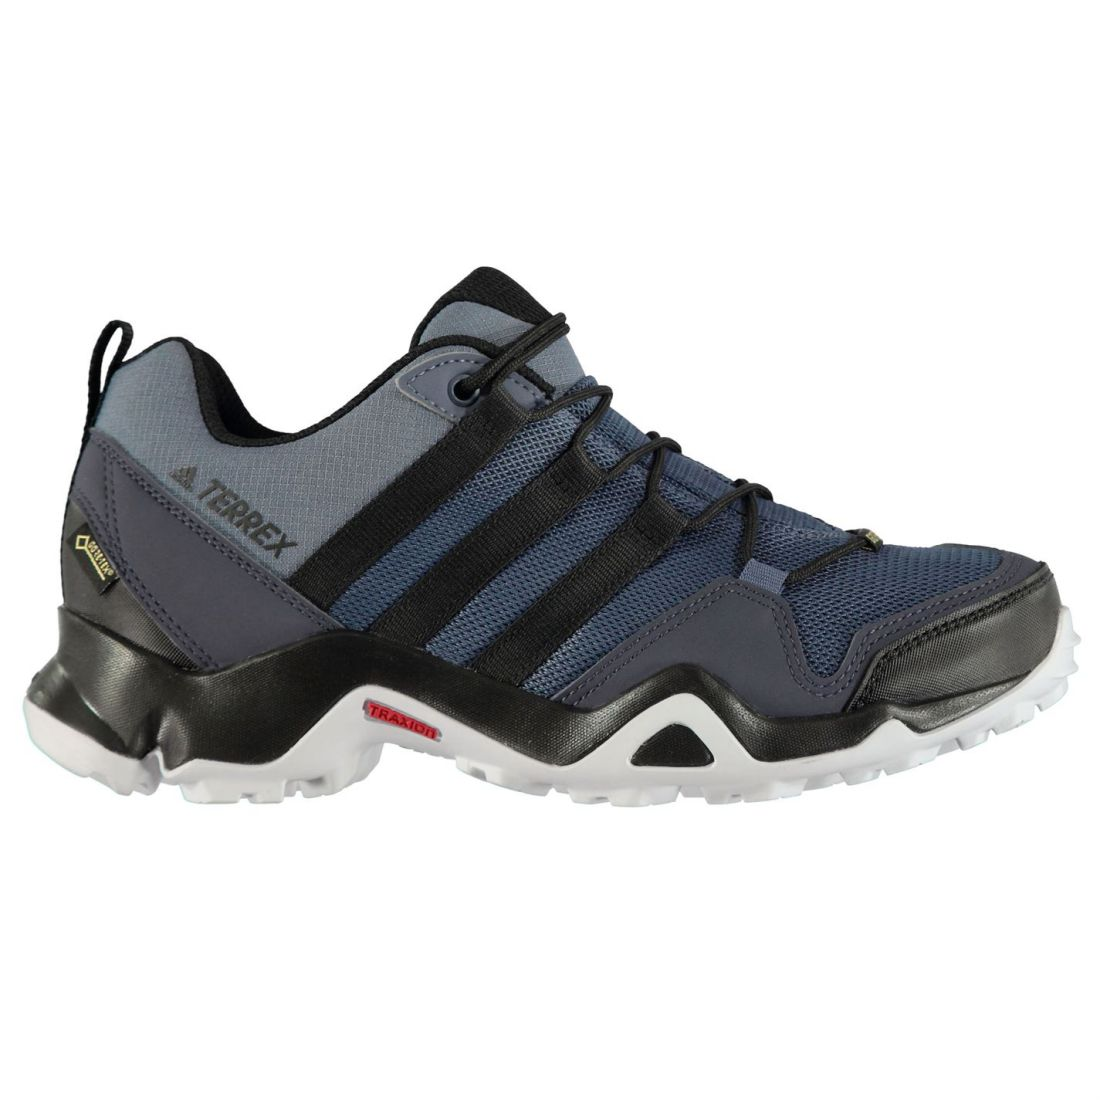 d9ad68c2 Details about adidas Womens Terrex AX2R GTX Low Walking Shoes Waterproof  Lace Up Breathable